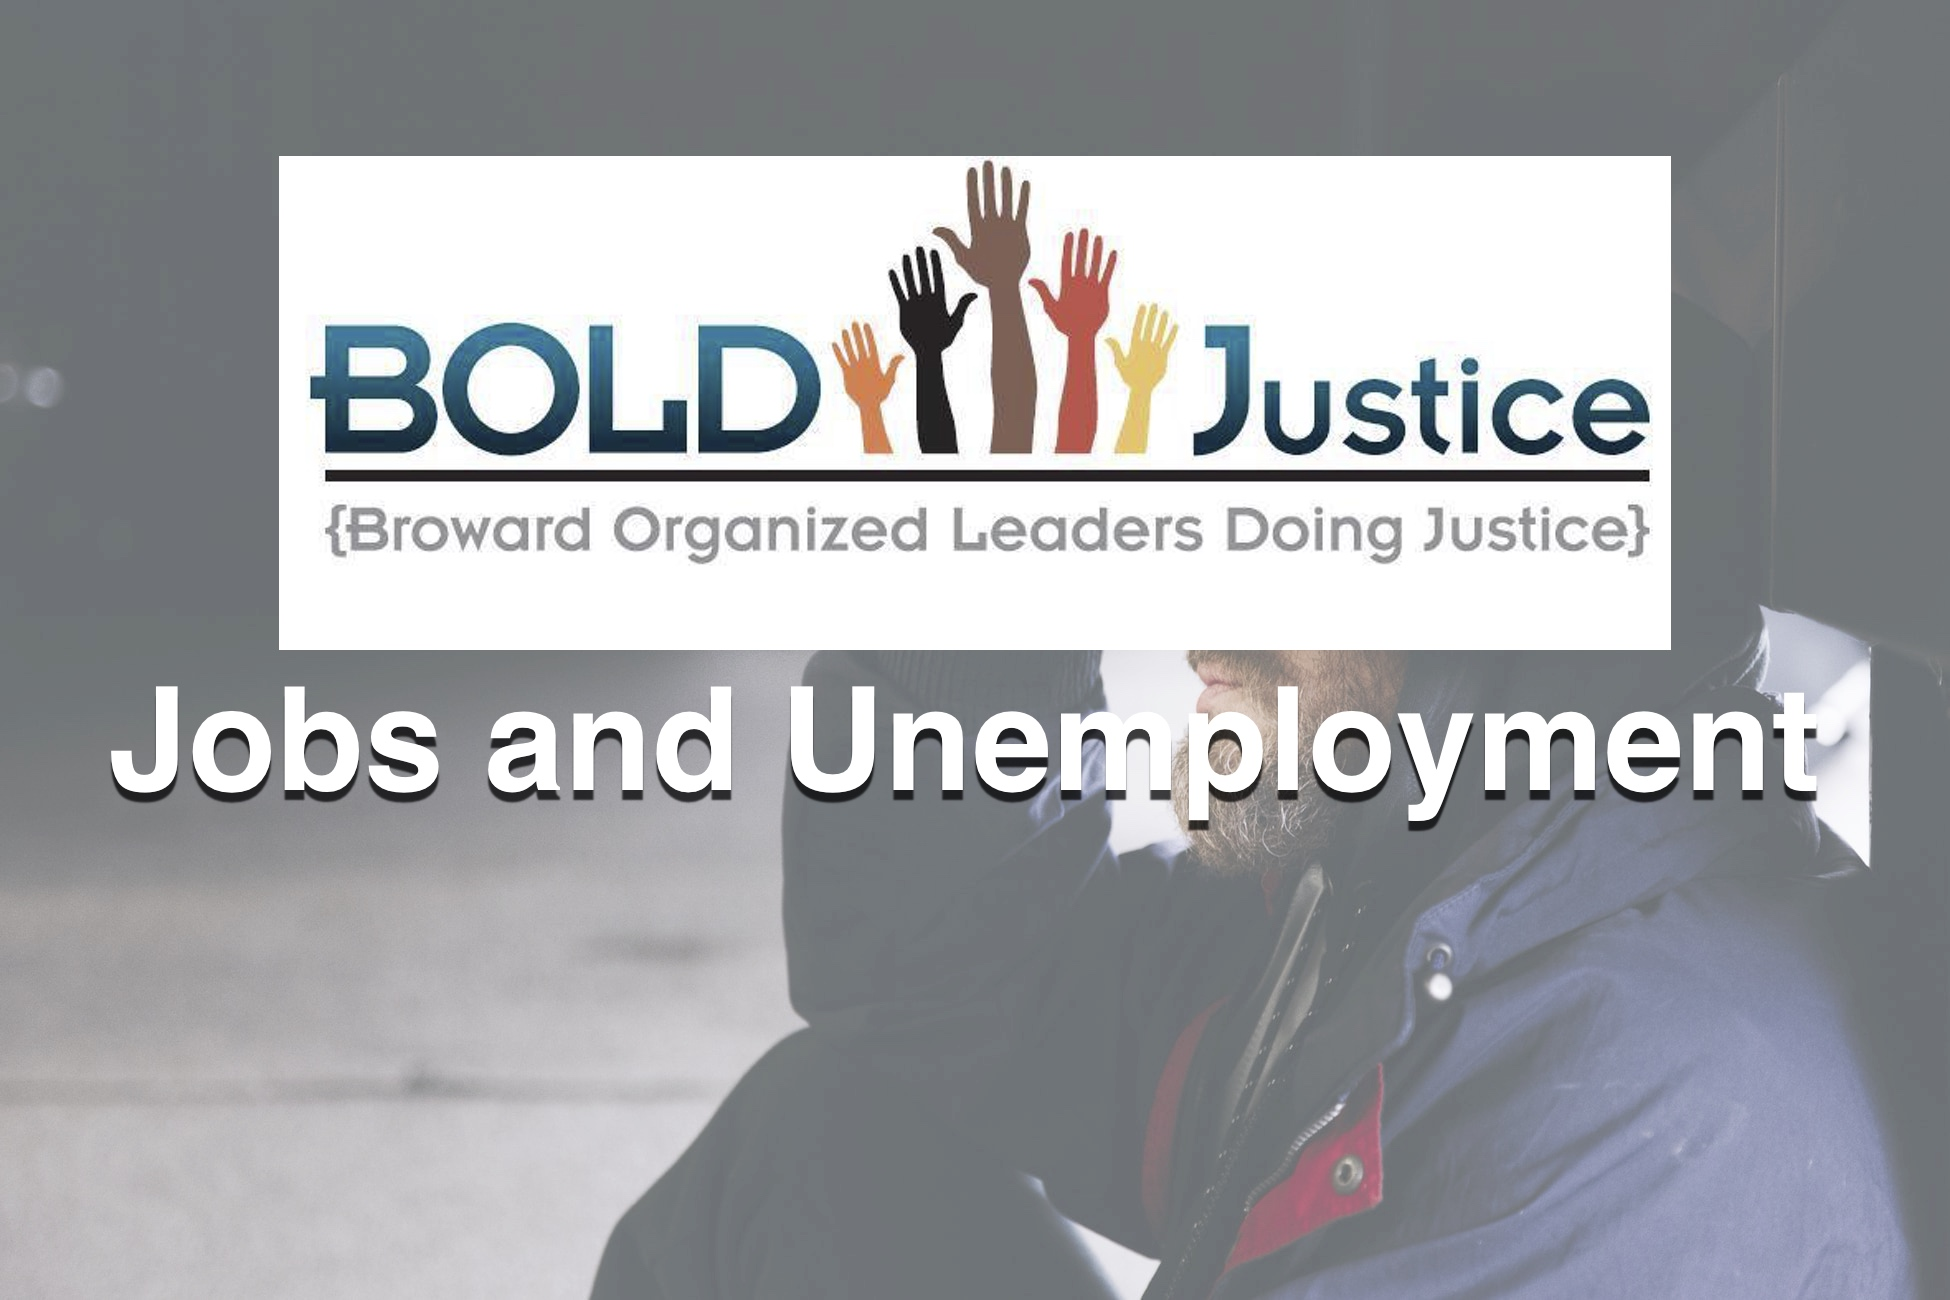 Jobs and Unemployment